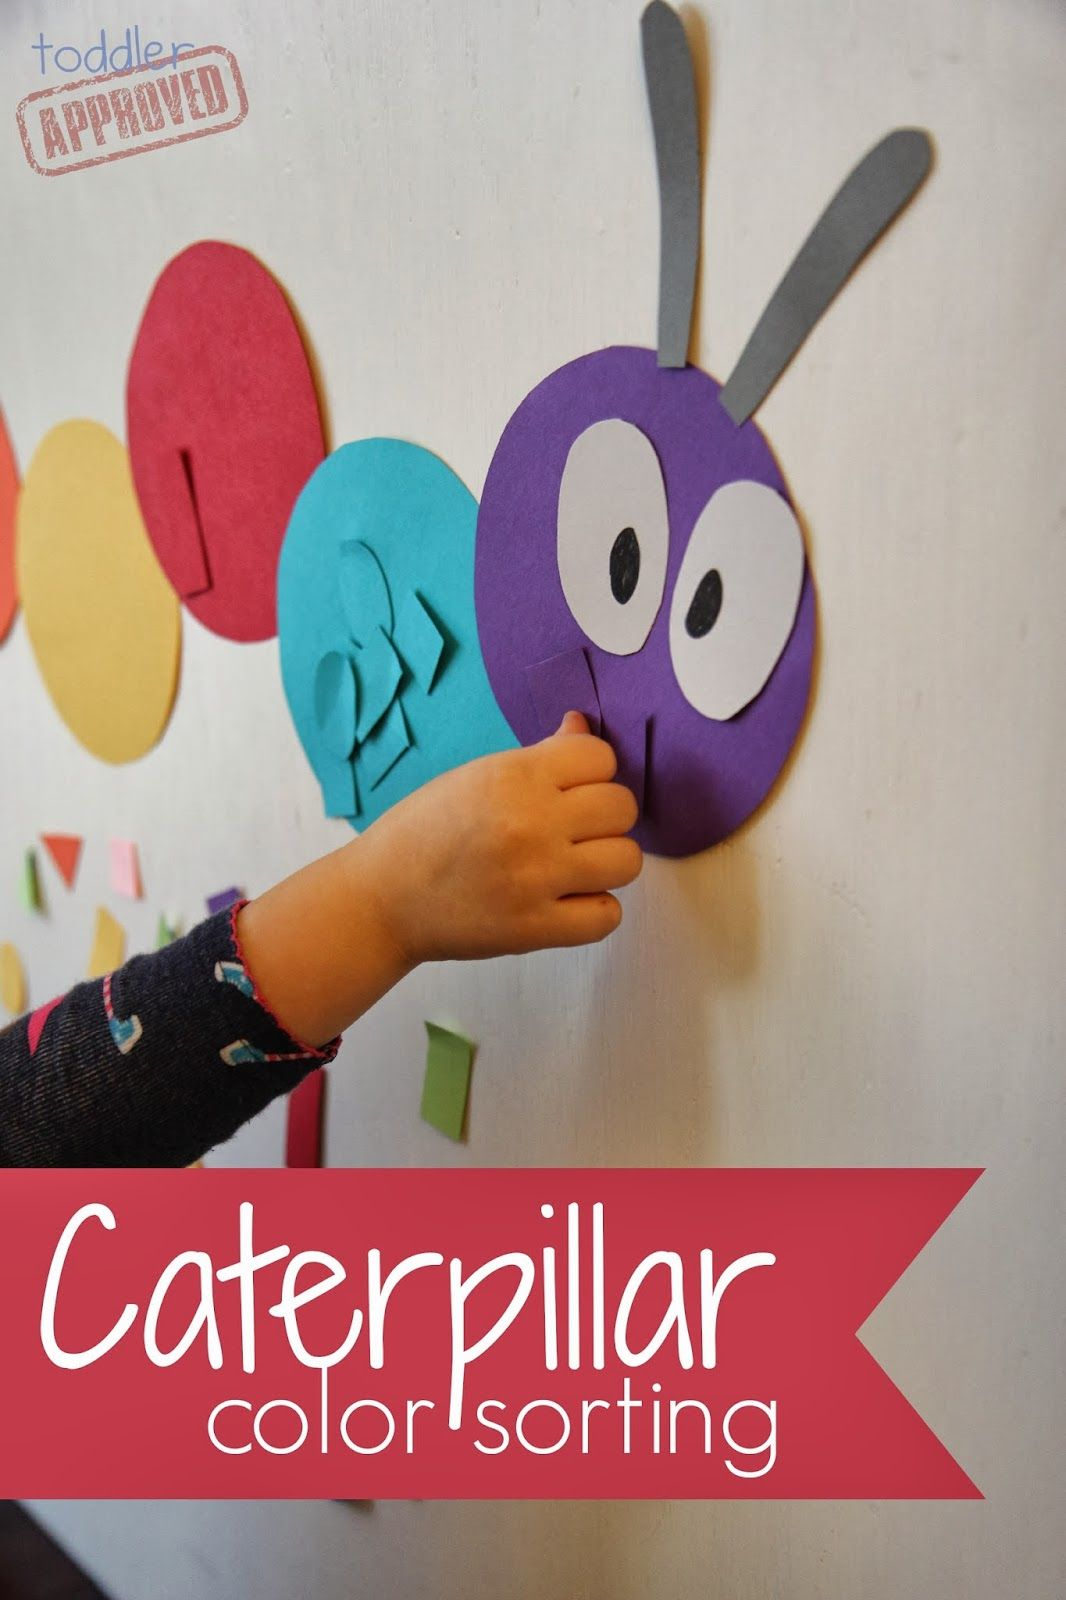 Caterpillar Color Sorting